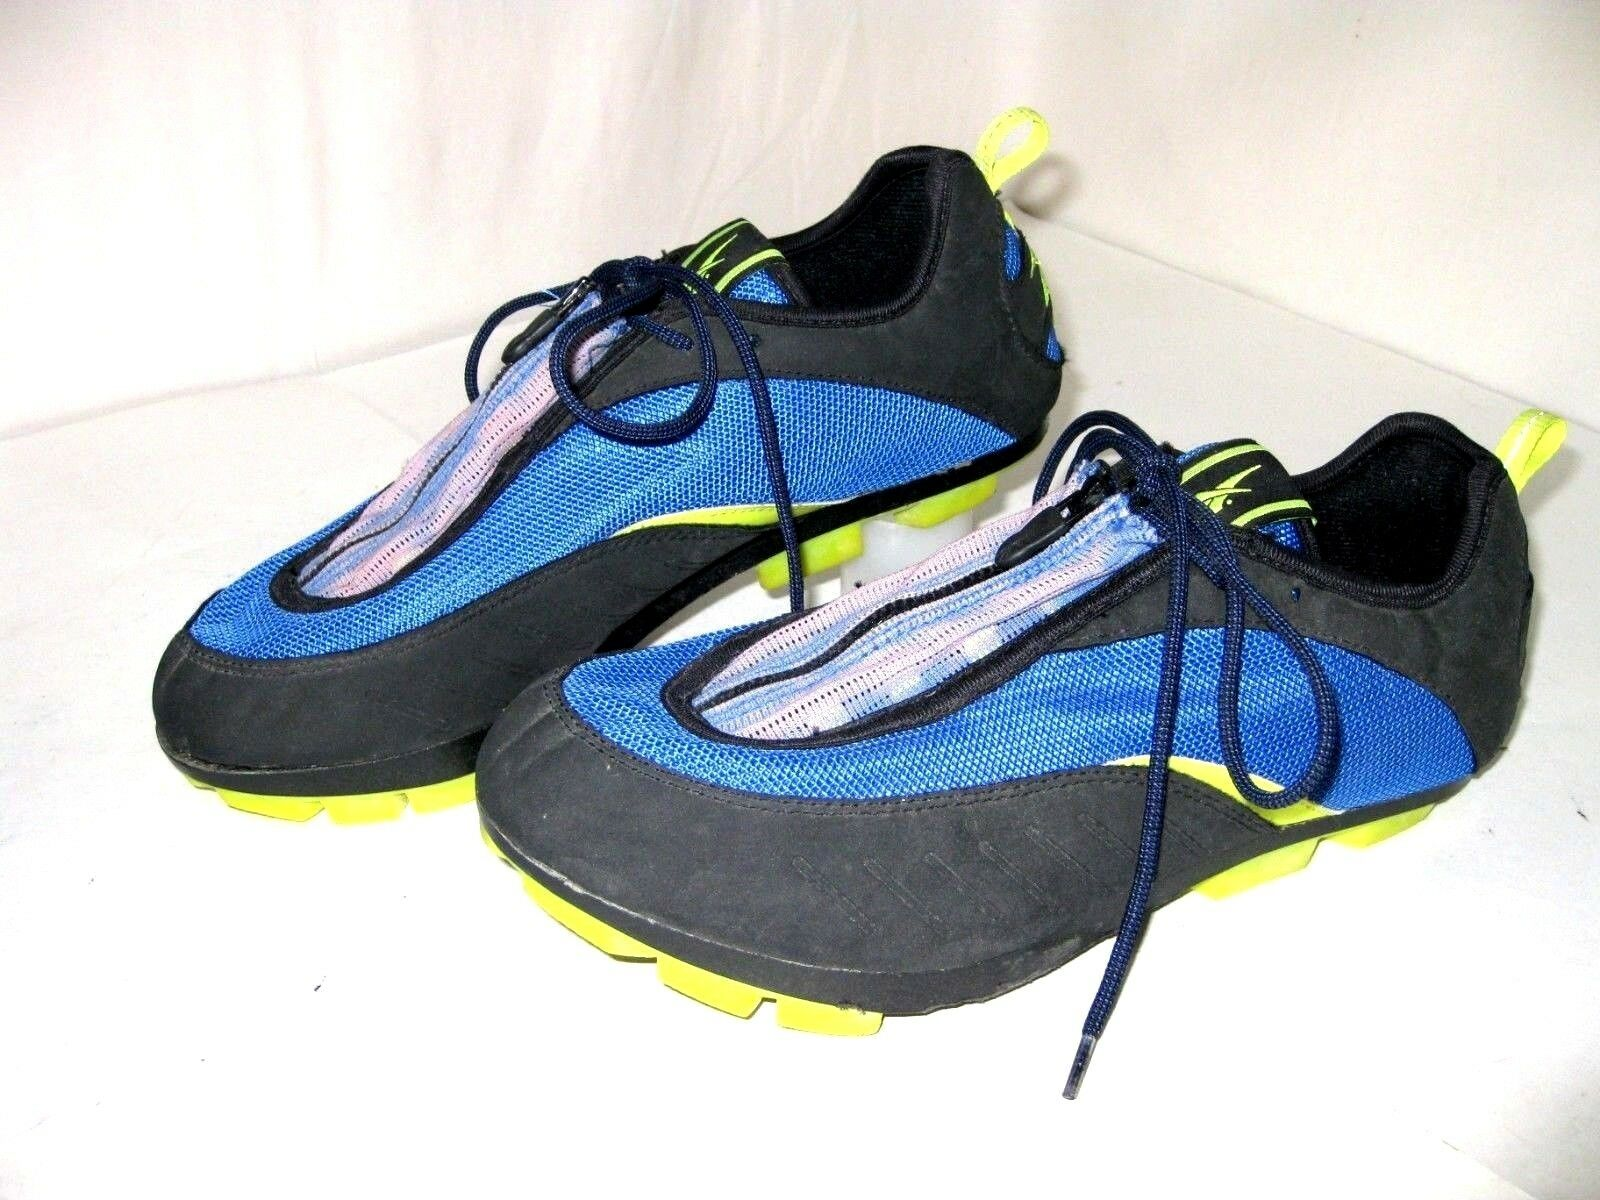 Reebok Cycling Bike  shoes with Clips  bluee Yellow Women's US Size 9  supply quality product